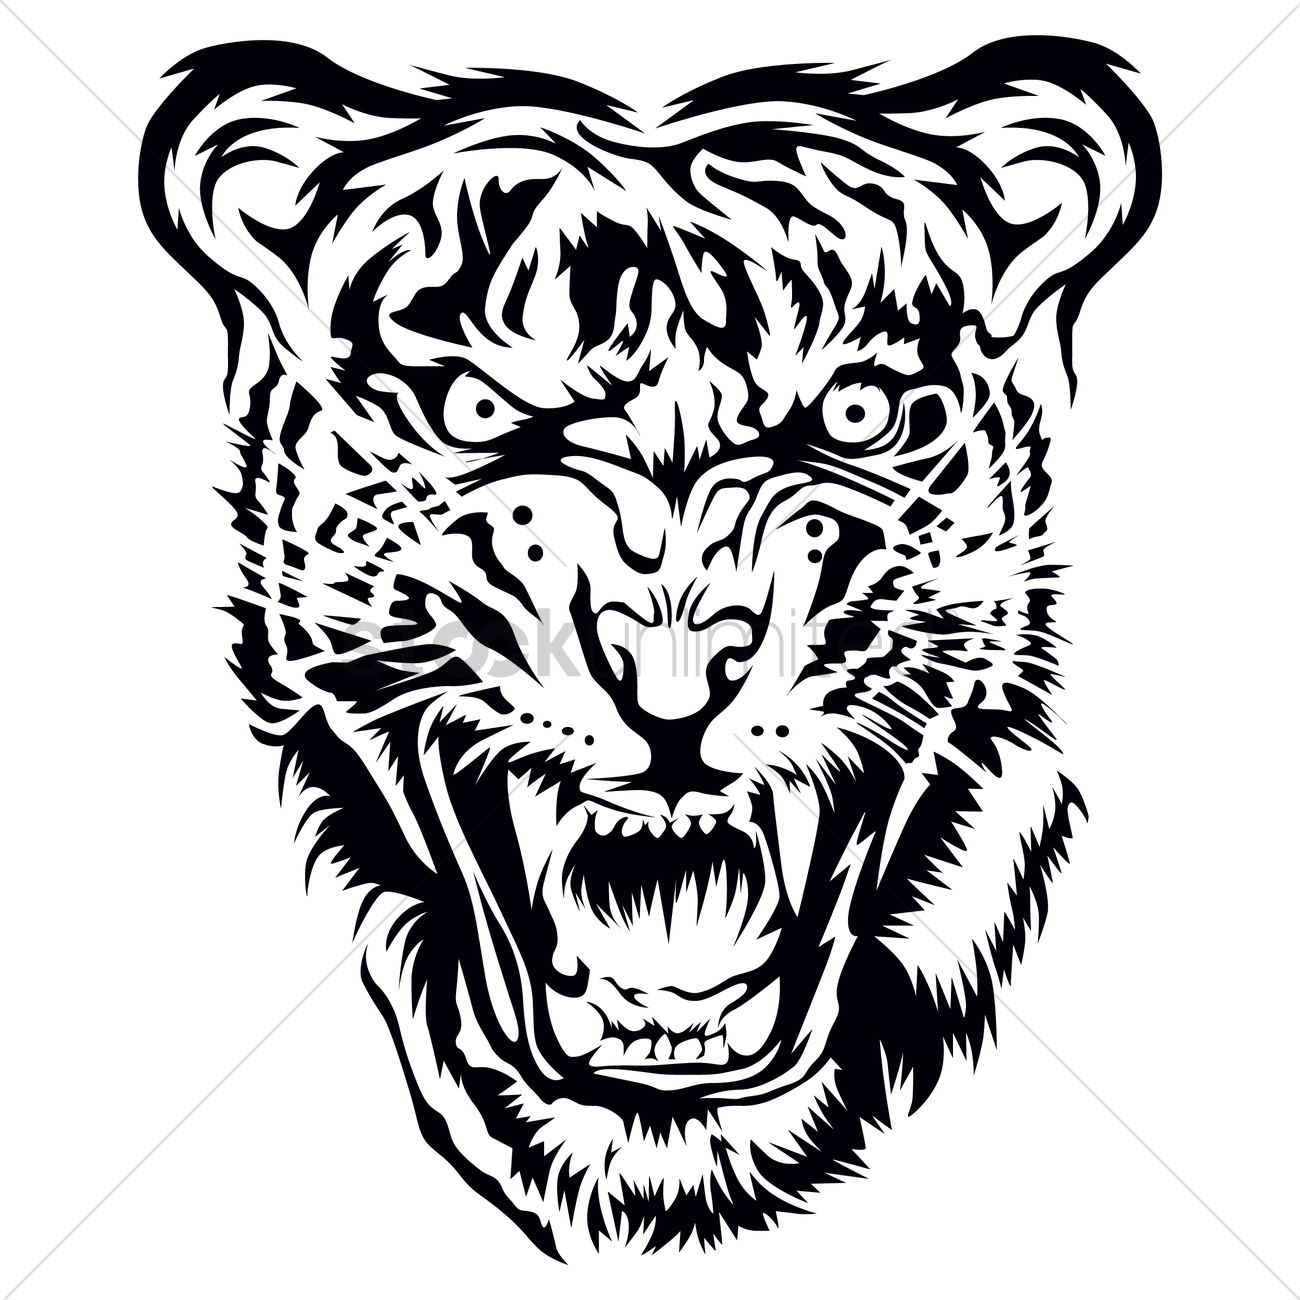 Tiger Head Tattoo Drawing | www.pixshark.com - Images ...